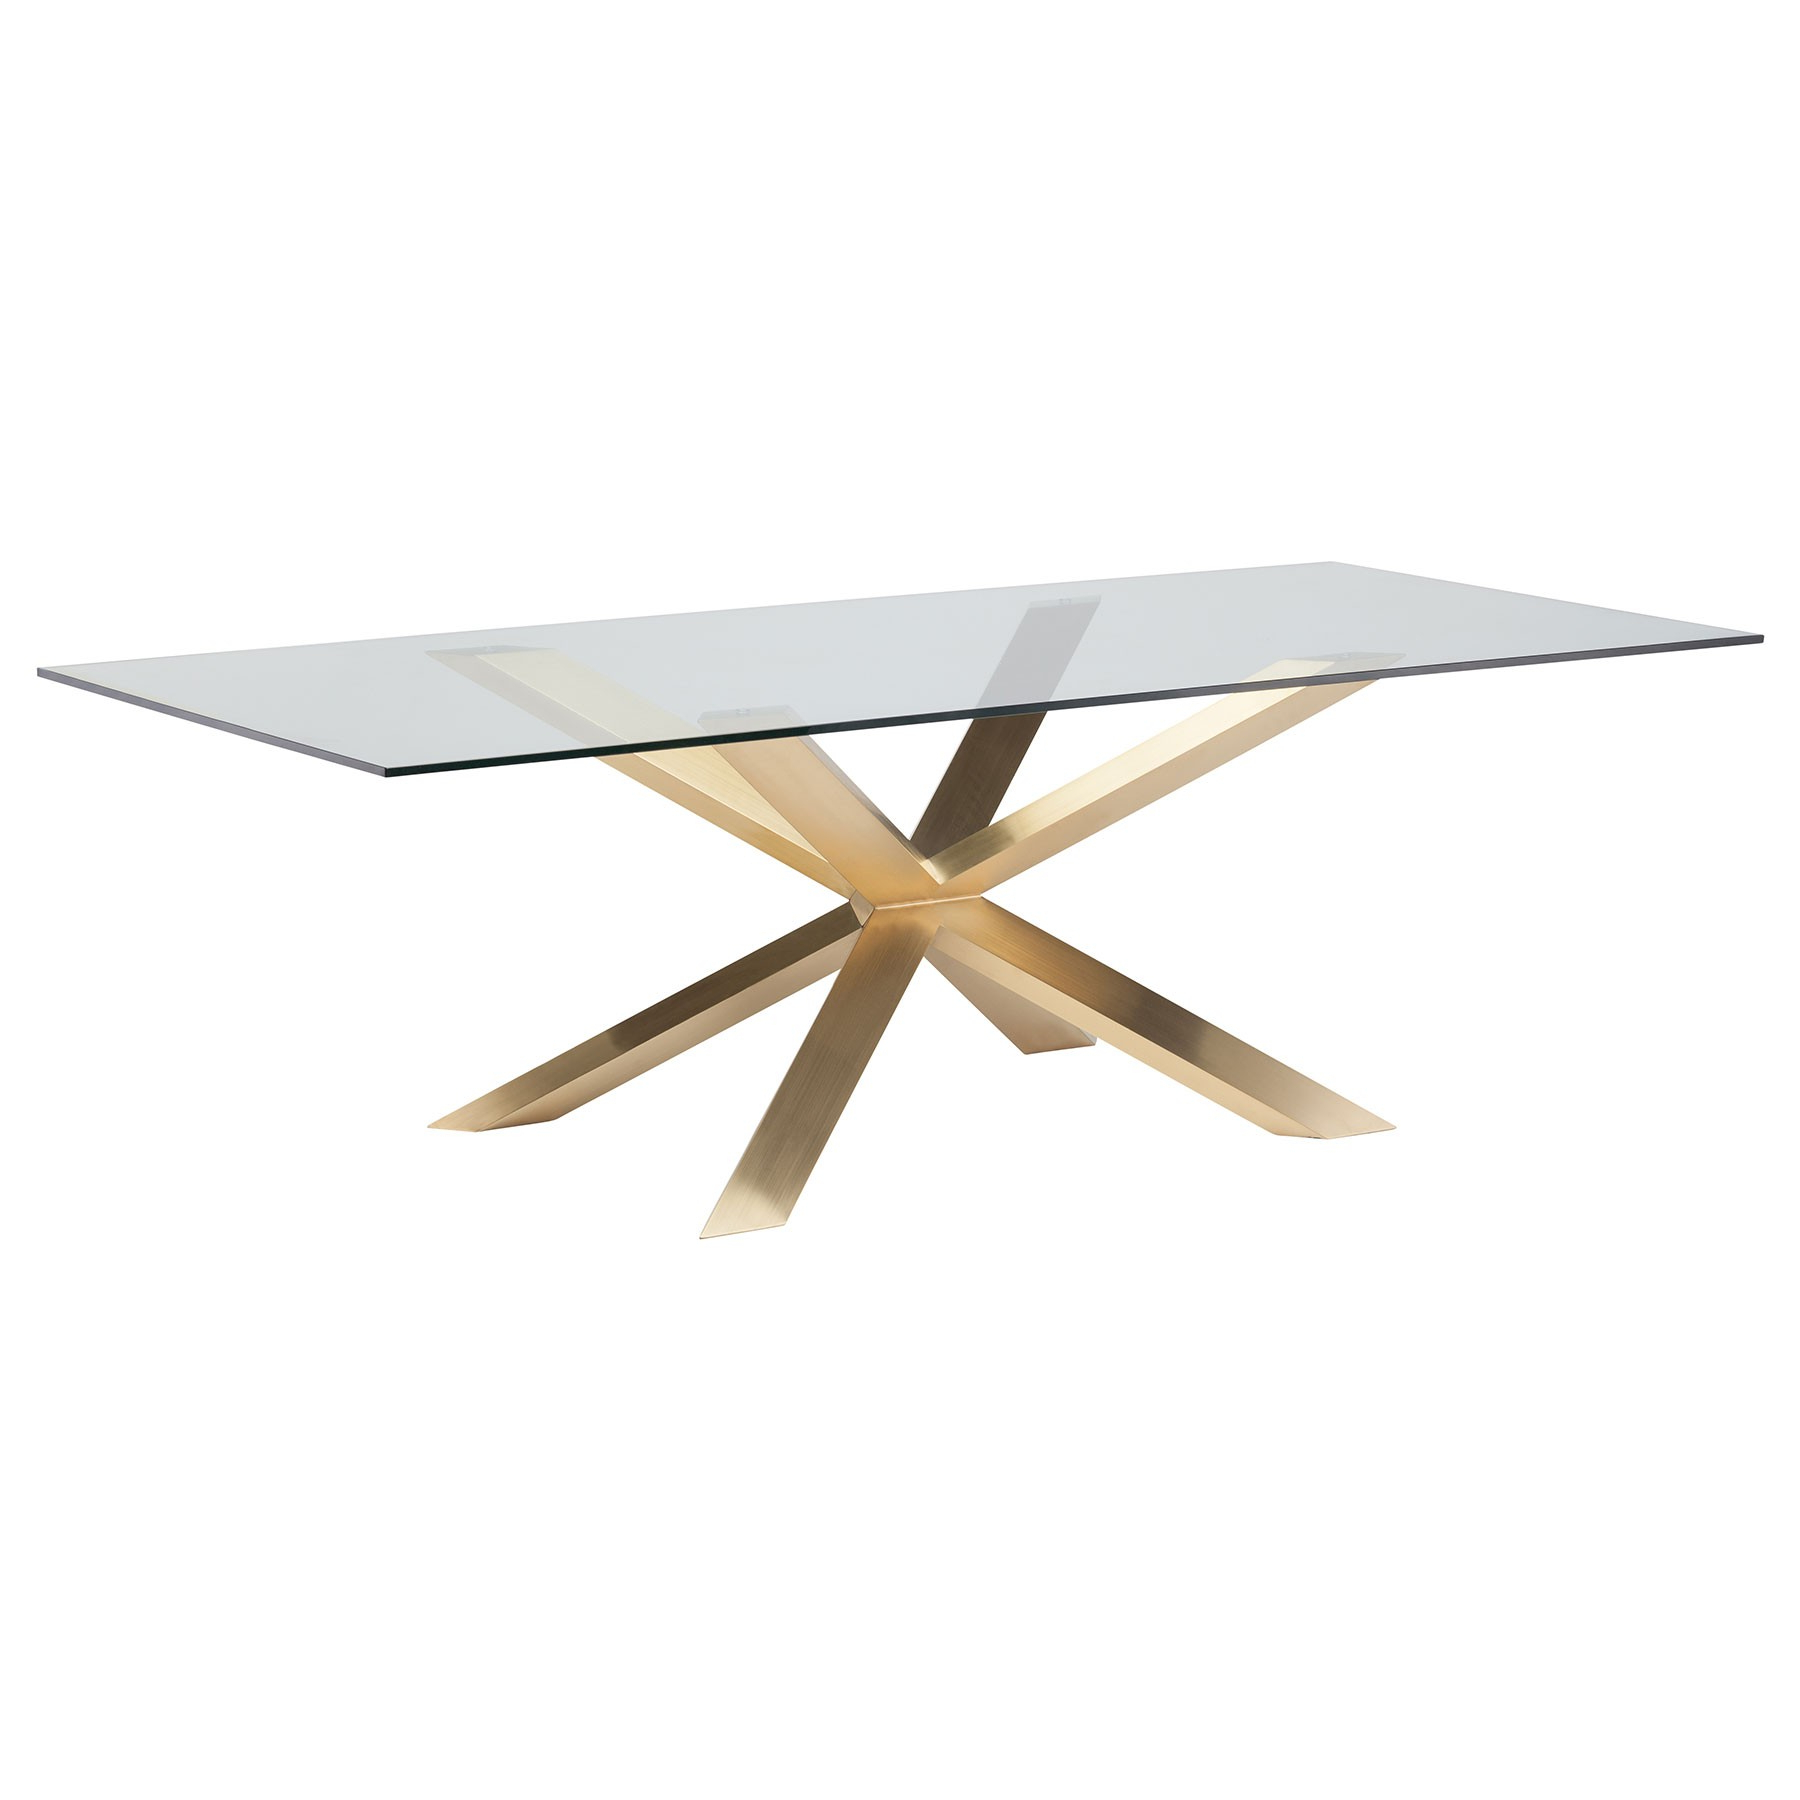 Most Recent Couture Dining Table – Glass / Gold With Regard To Dining Tables With Brushed Gold Stainless Finish (View 16 of 25)